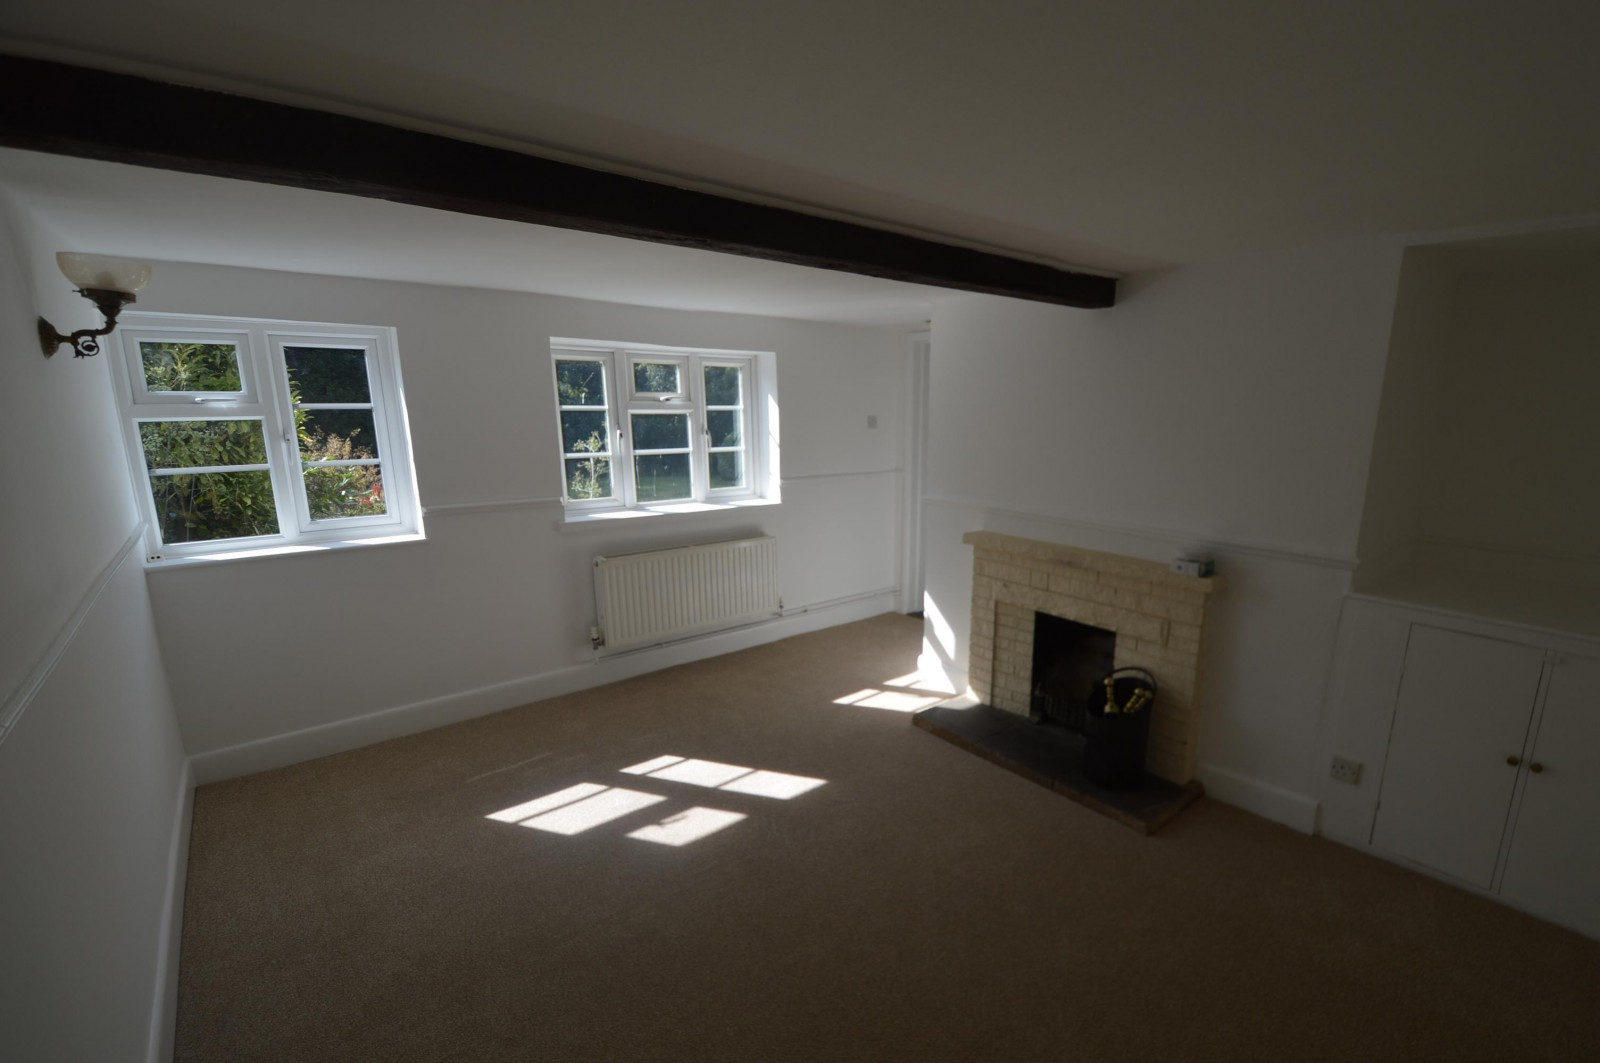 Lounge Property to let in West Meon